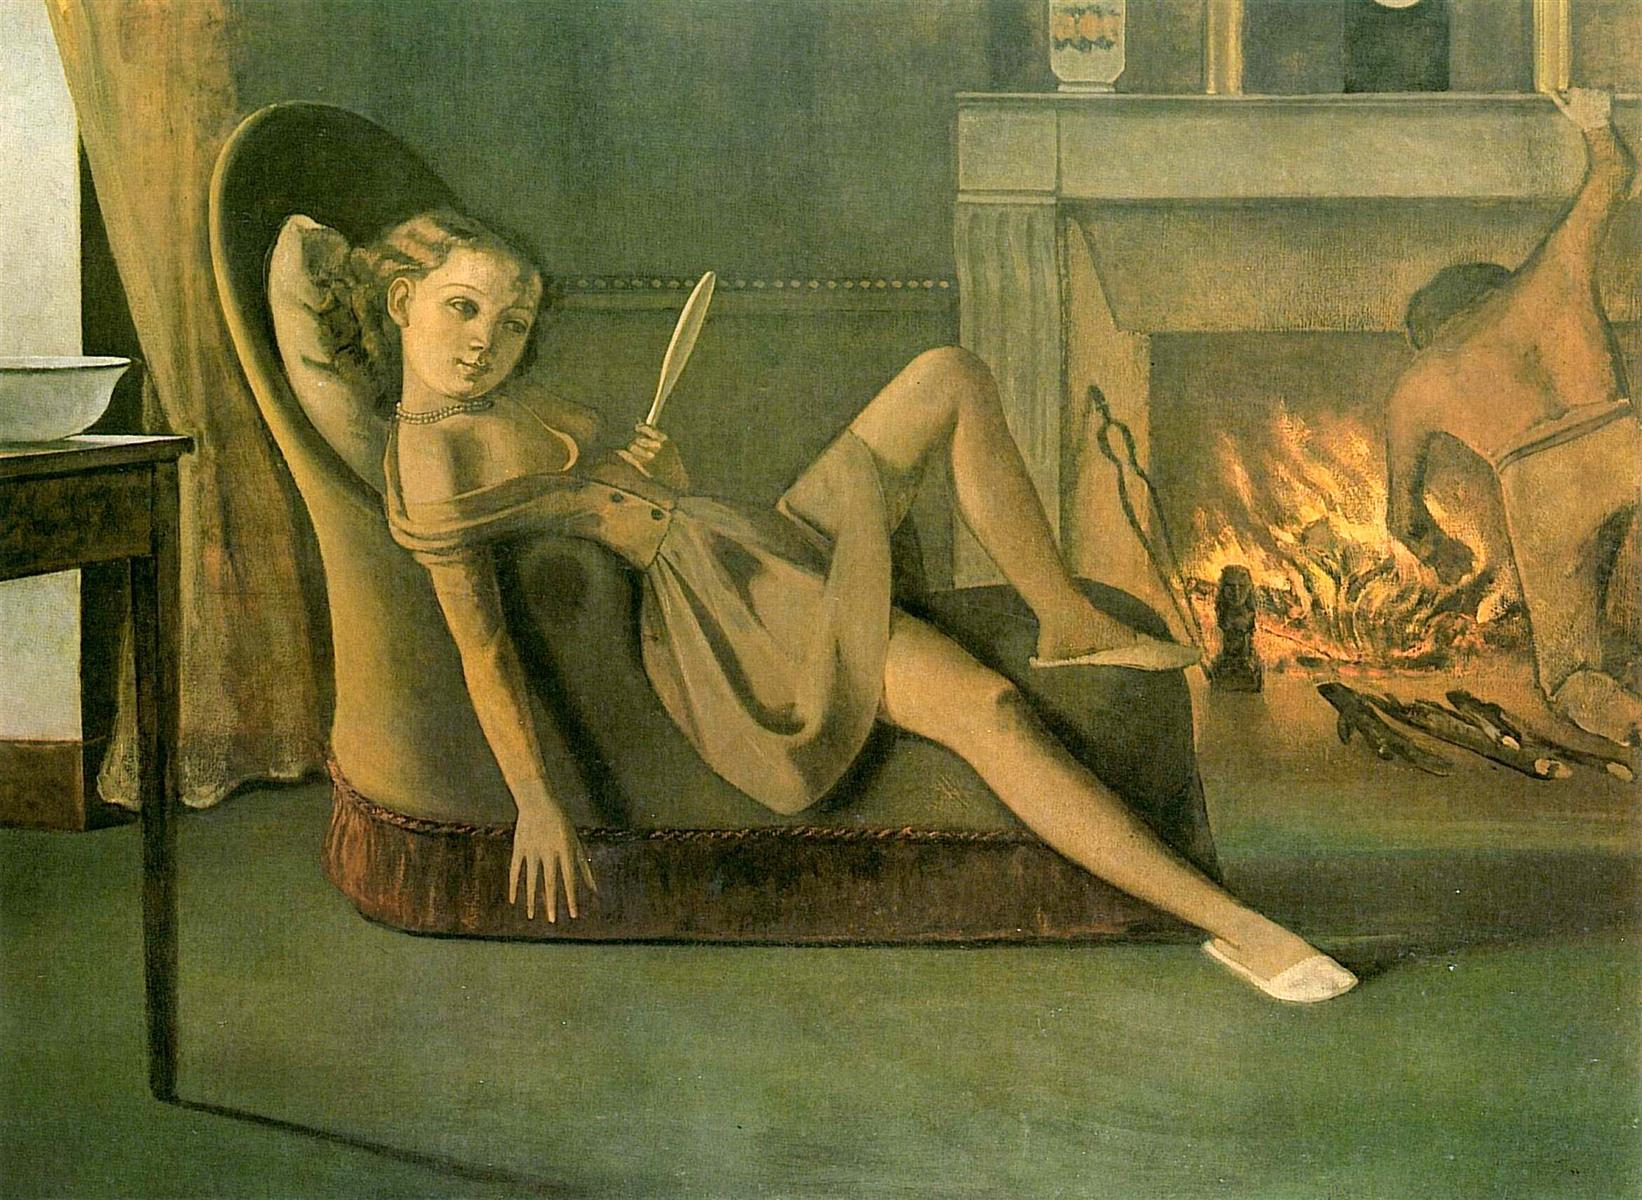 http://uploads1.wikipaintings.org/images/balthus/the-golden-years.jpg!HD.jpg